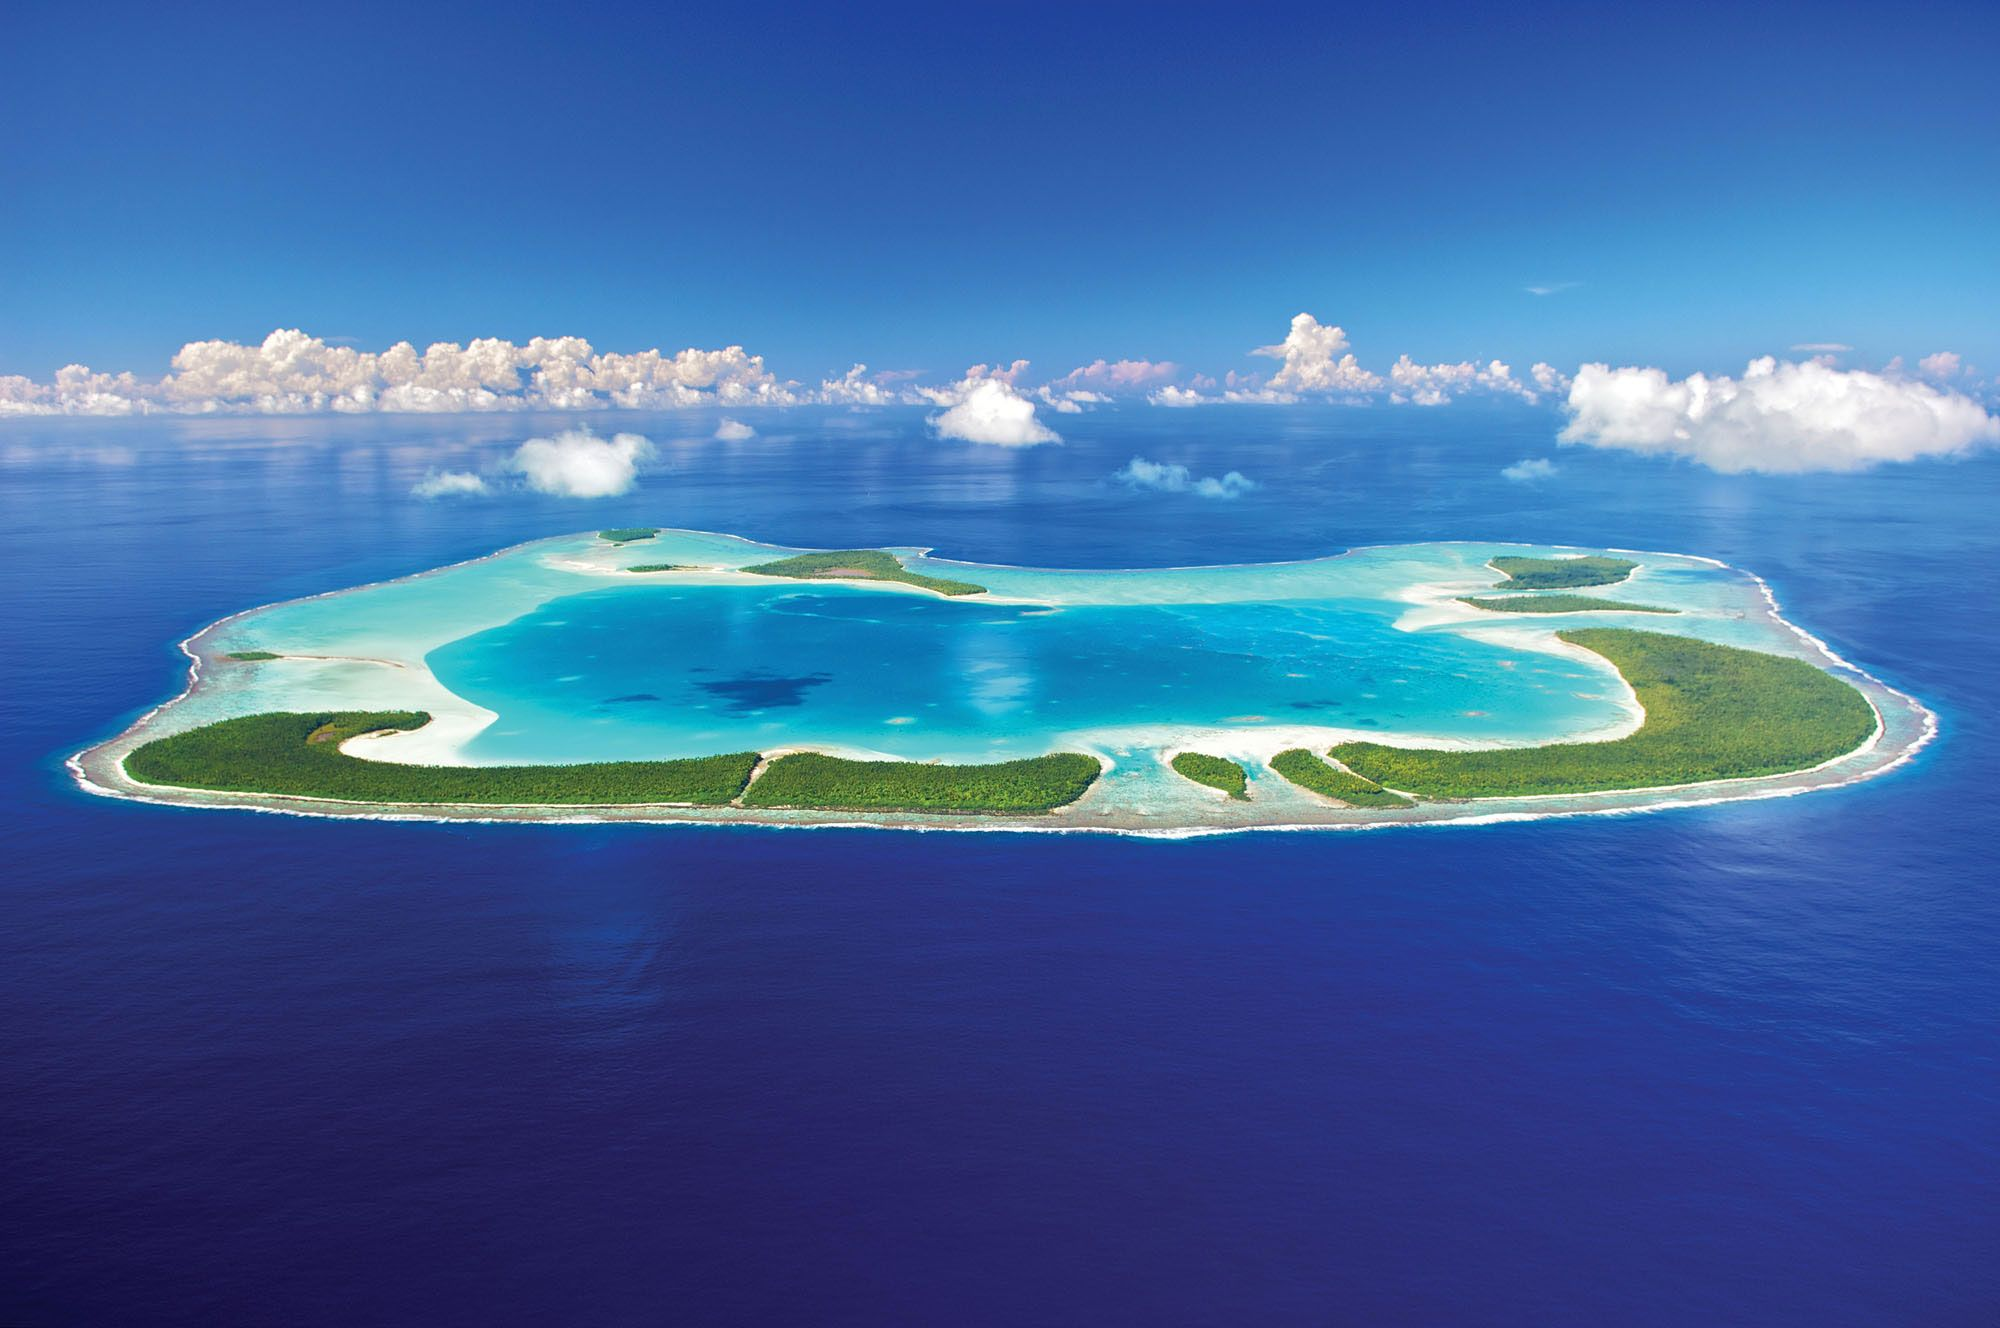 말론 브란도 개인 섬 The Brando Location : Tetiaroa, Tahiti, French Polynesia http://takeyourbeat.blog.me/220022562096